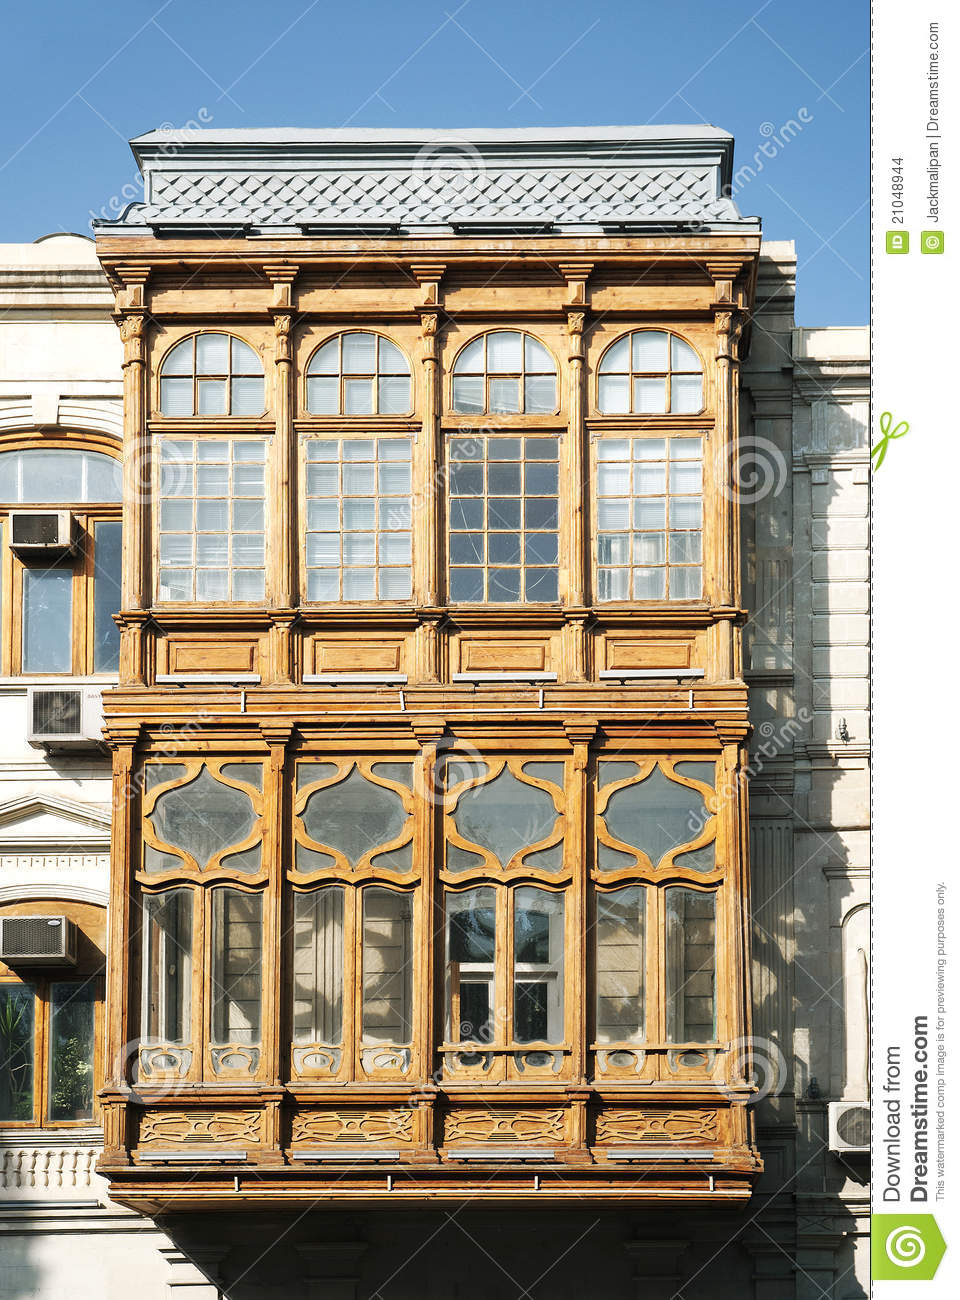 Traditional balcony architecture baku azerbaijan stock for Traditional balconies